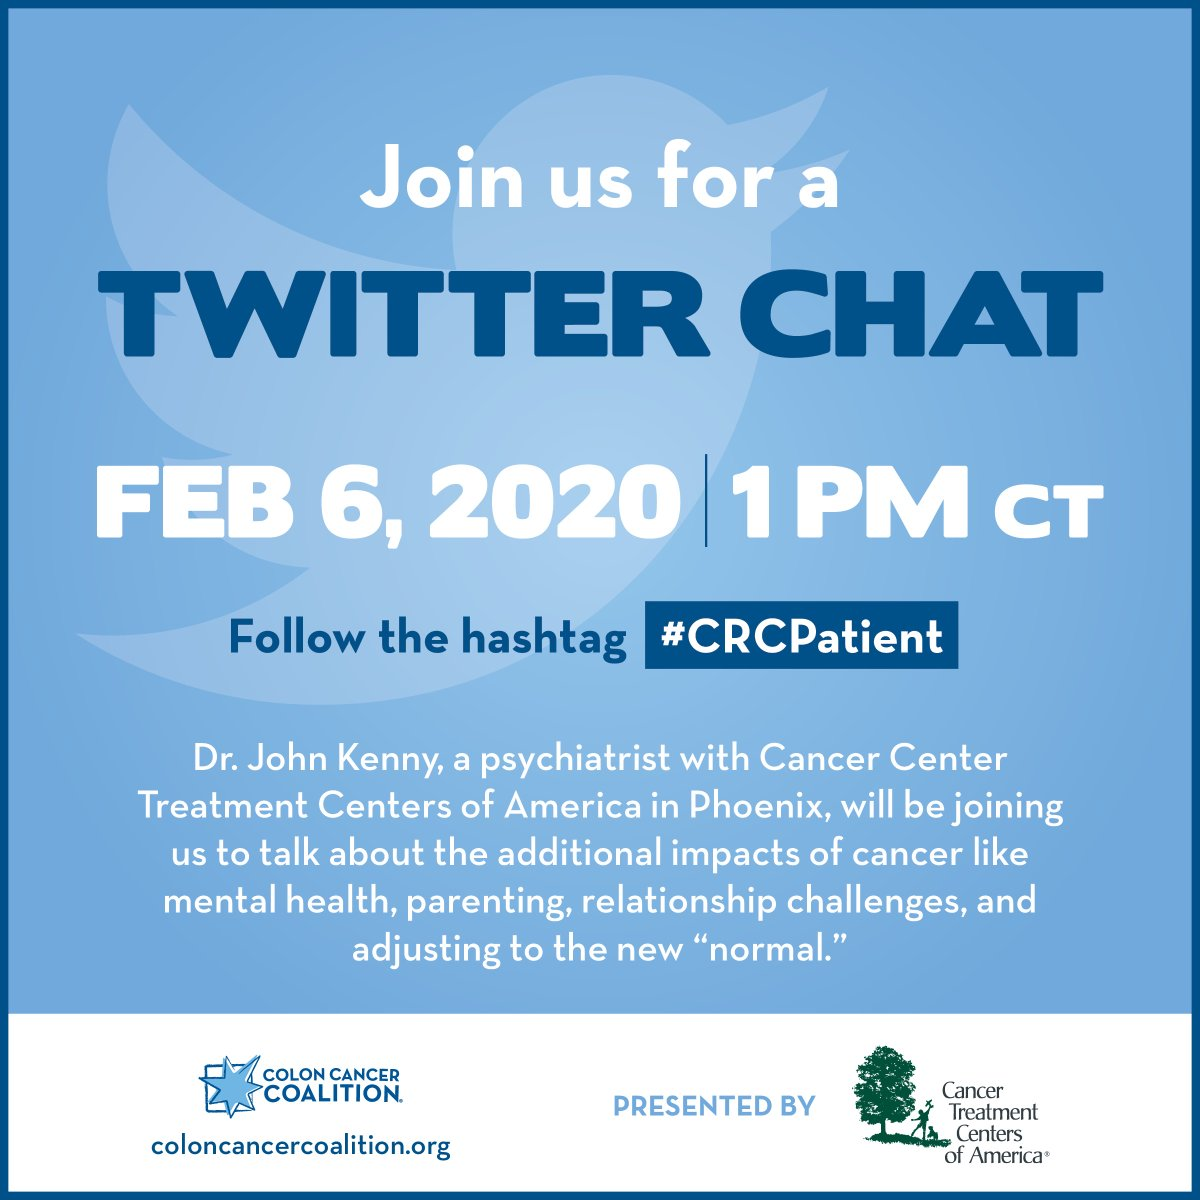 Save the date for our next Twitter Chat with @CancerCenter on February 6, 2020. #CRCPatient